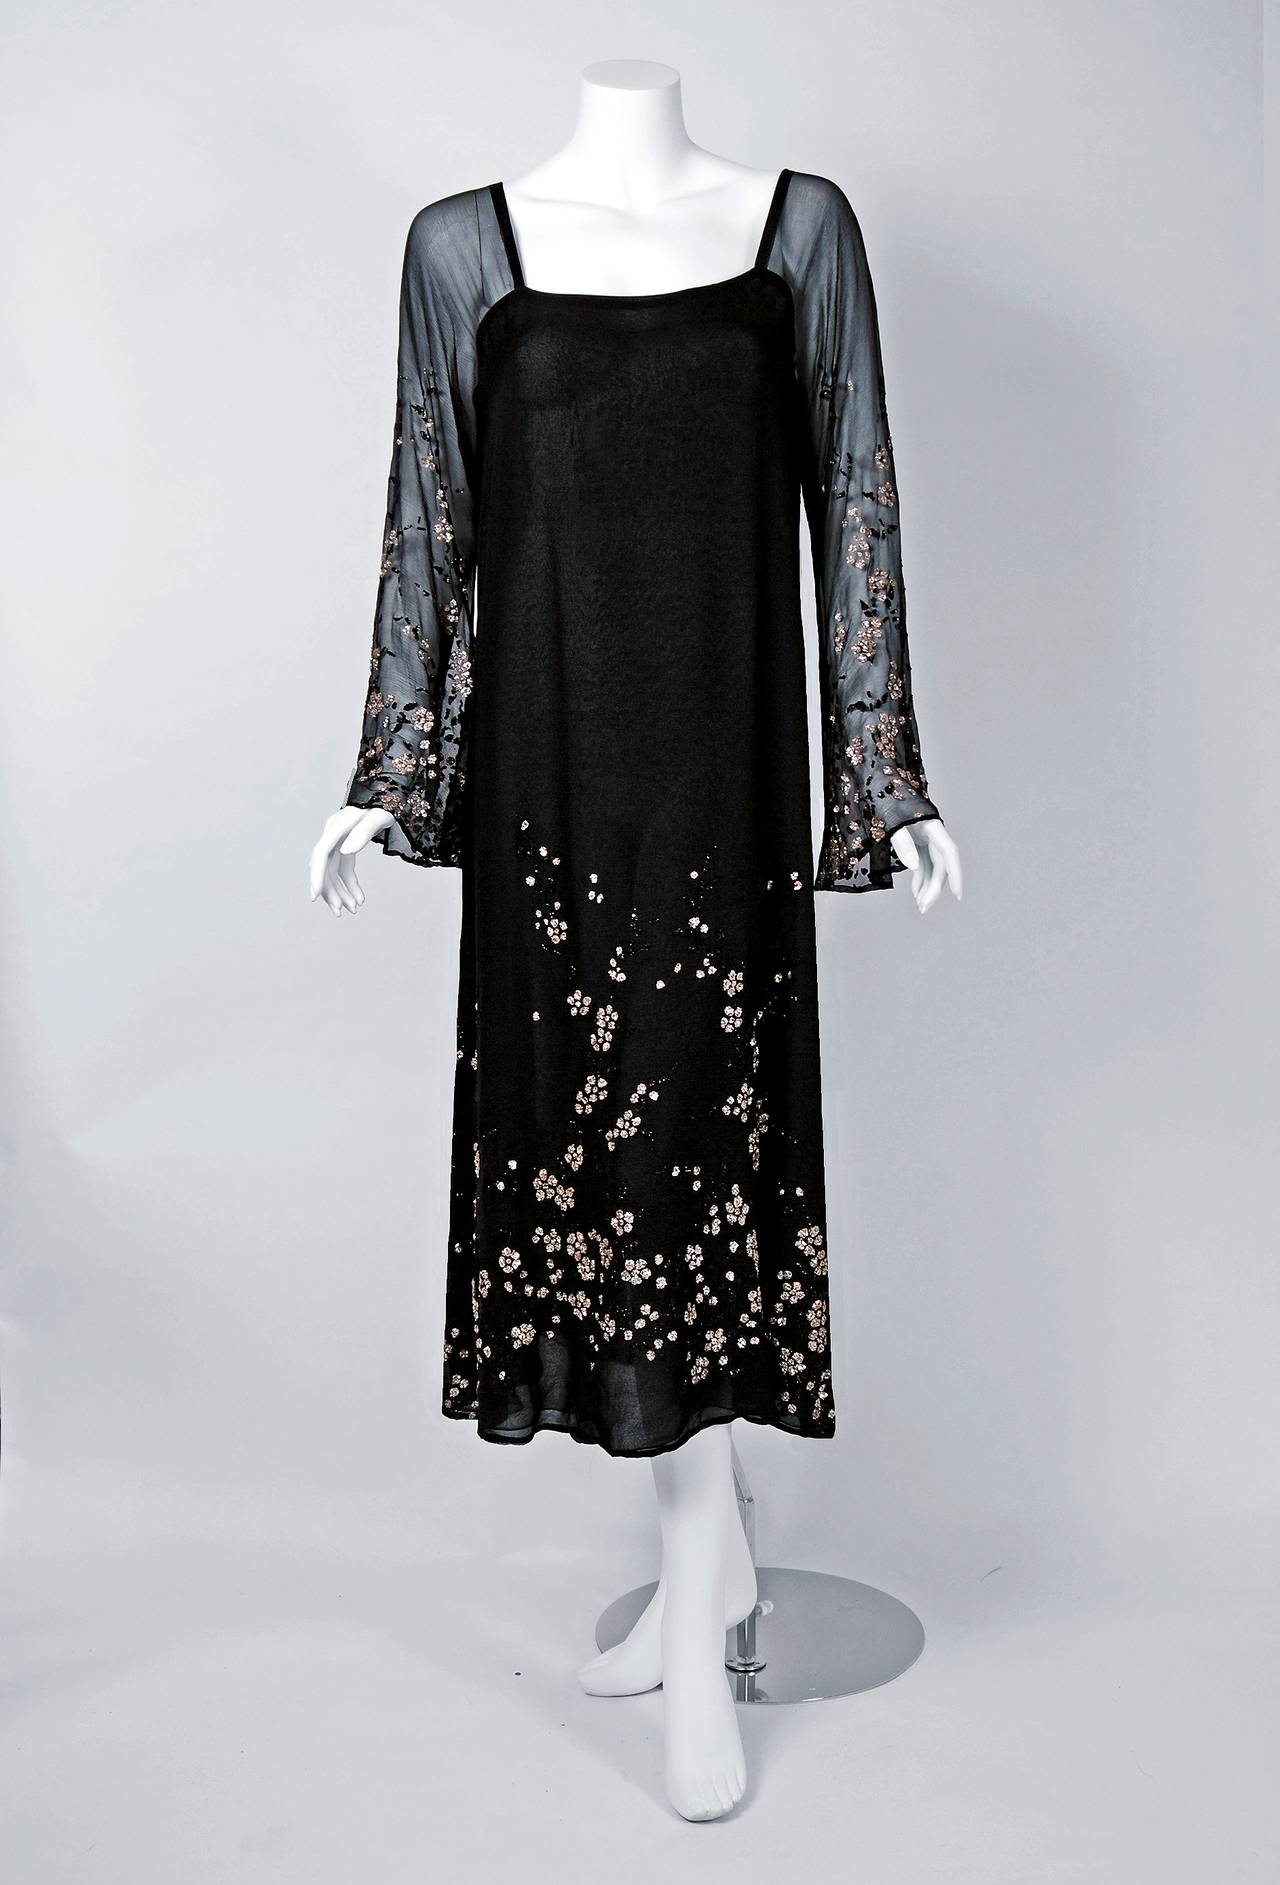 1970's Pauline Trigere Black Silk-Chiffon Glitter Illusion Bell-Sleeve Dress 2